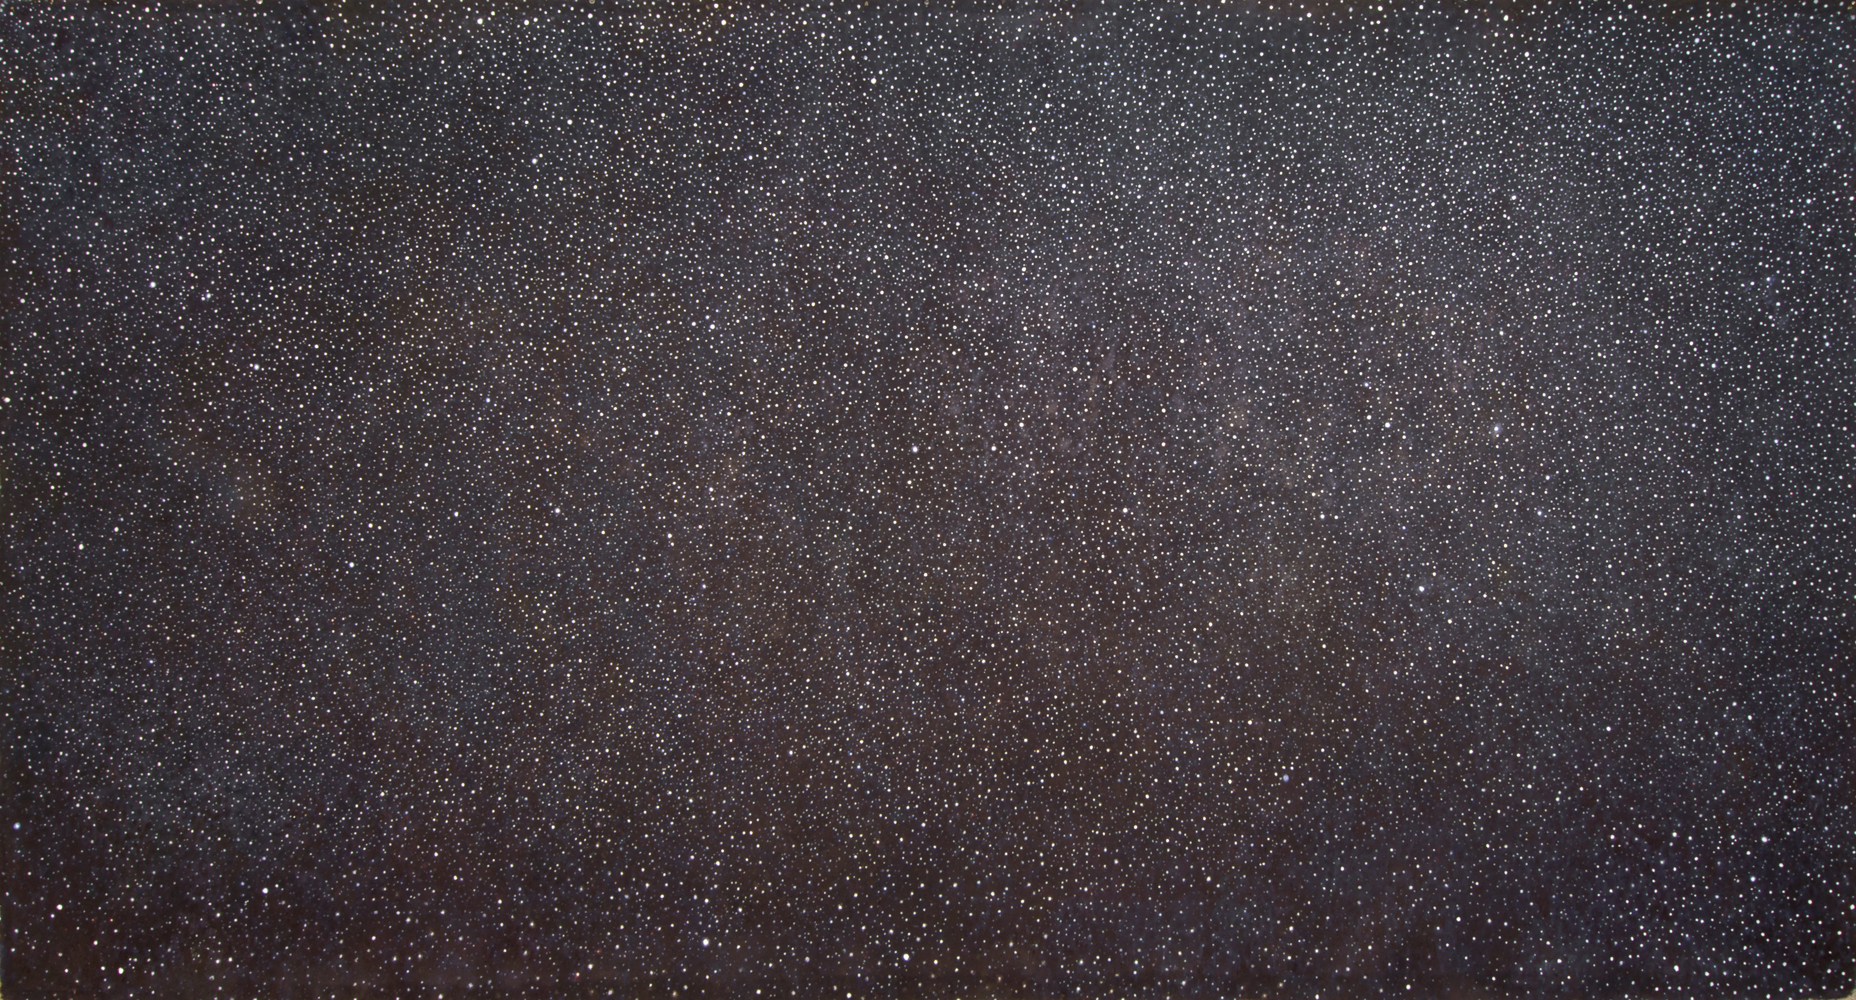 Linda Davidson, Star Painting, 2019, oil on canvas, 63 x 120, SOLD